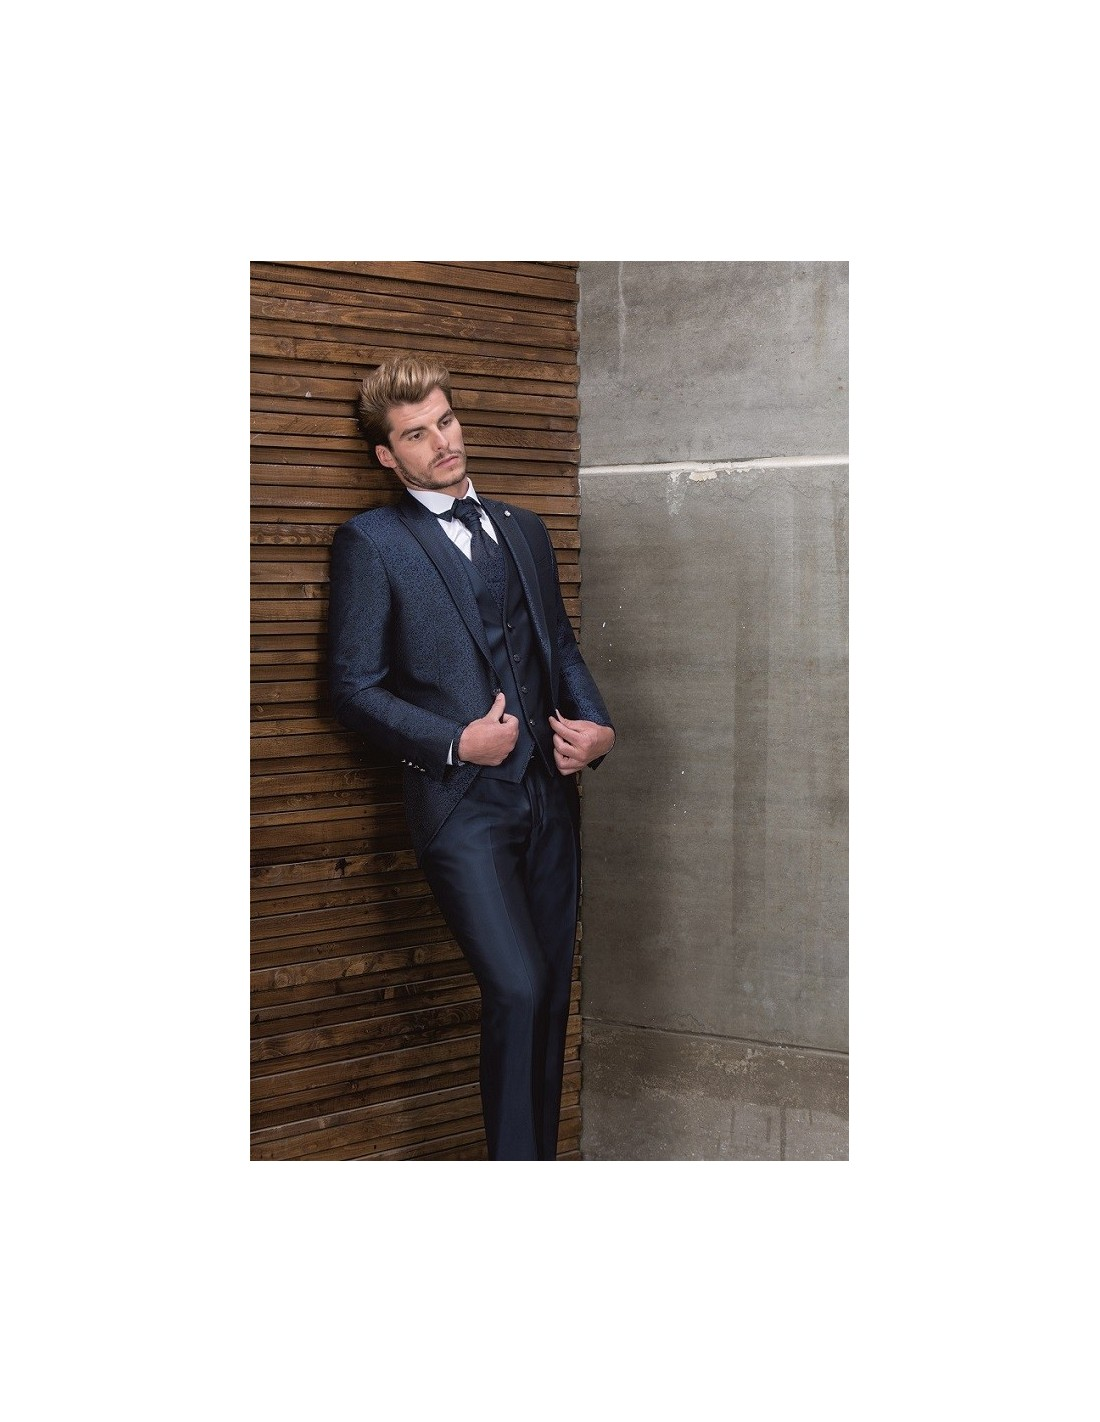 34S Men's Suits at Macy's come in all styles and sizes. Shop 34S Men's Suits and get free shipping w/minimum purchase!